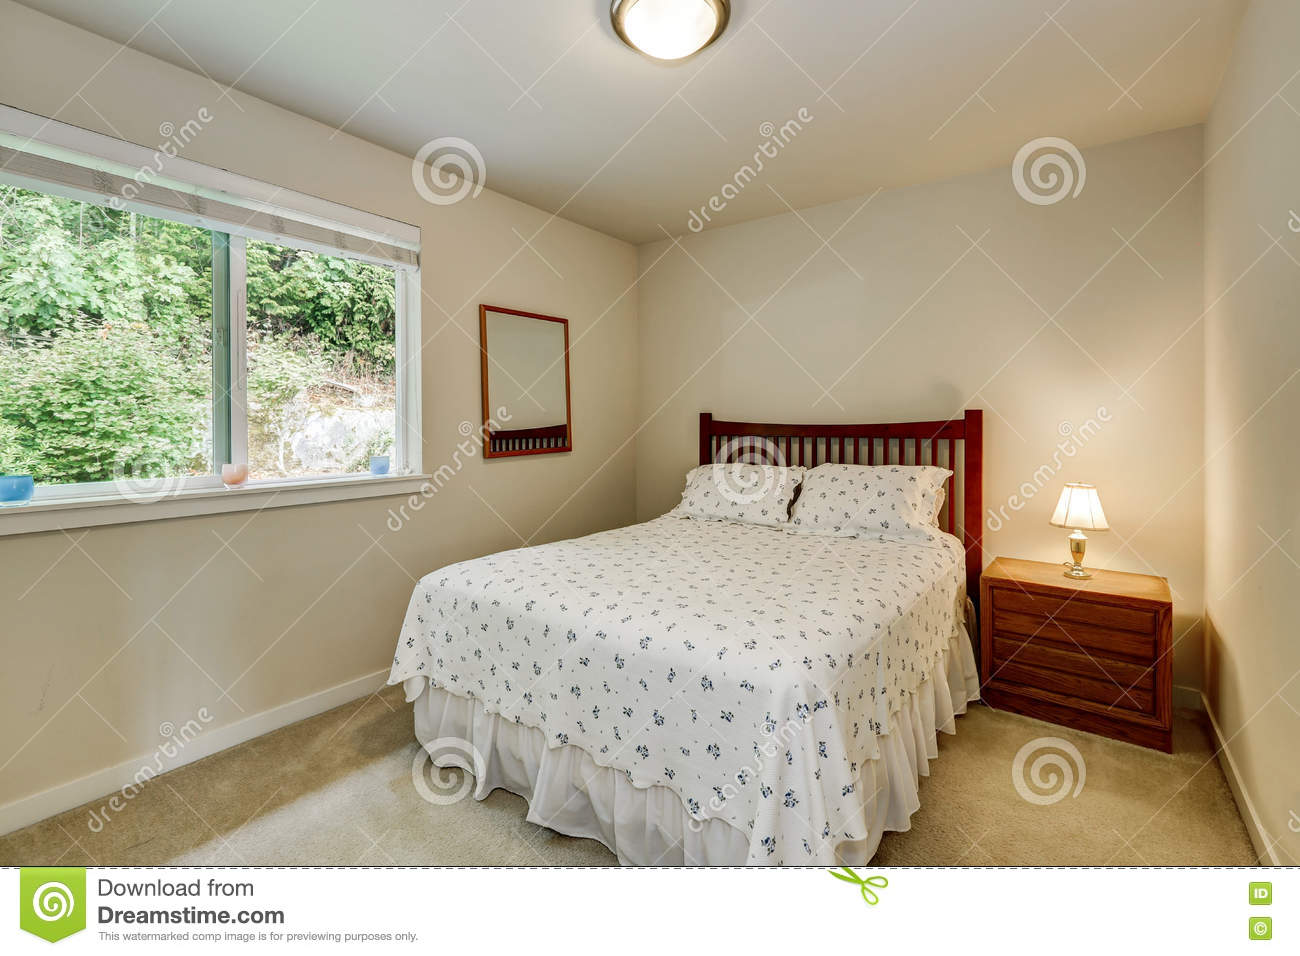 Simple Bedroom Interior Design Stock Image Image Of Comfortable Architecture 79043385